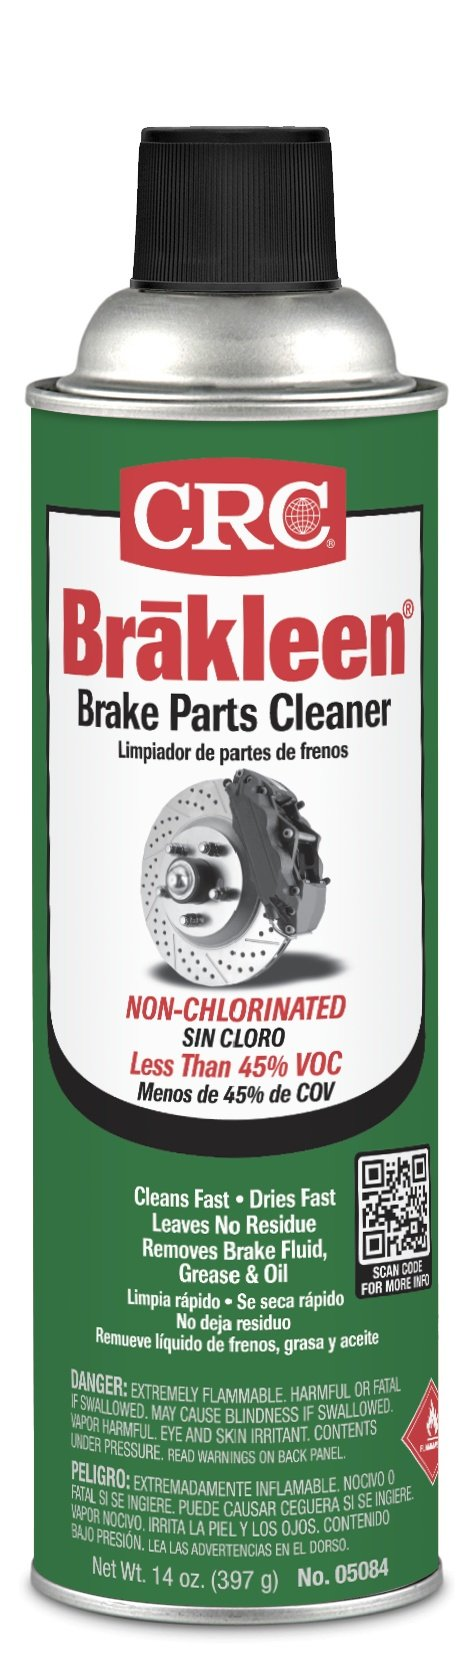 CRC Brakleen Non-chlorinated Brake Parts Cleaner, Less 45% VOC, 14 Oz, Pack of 12 Cans by CRC